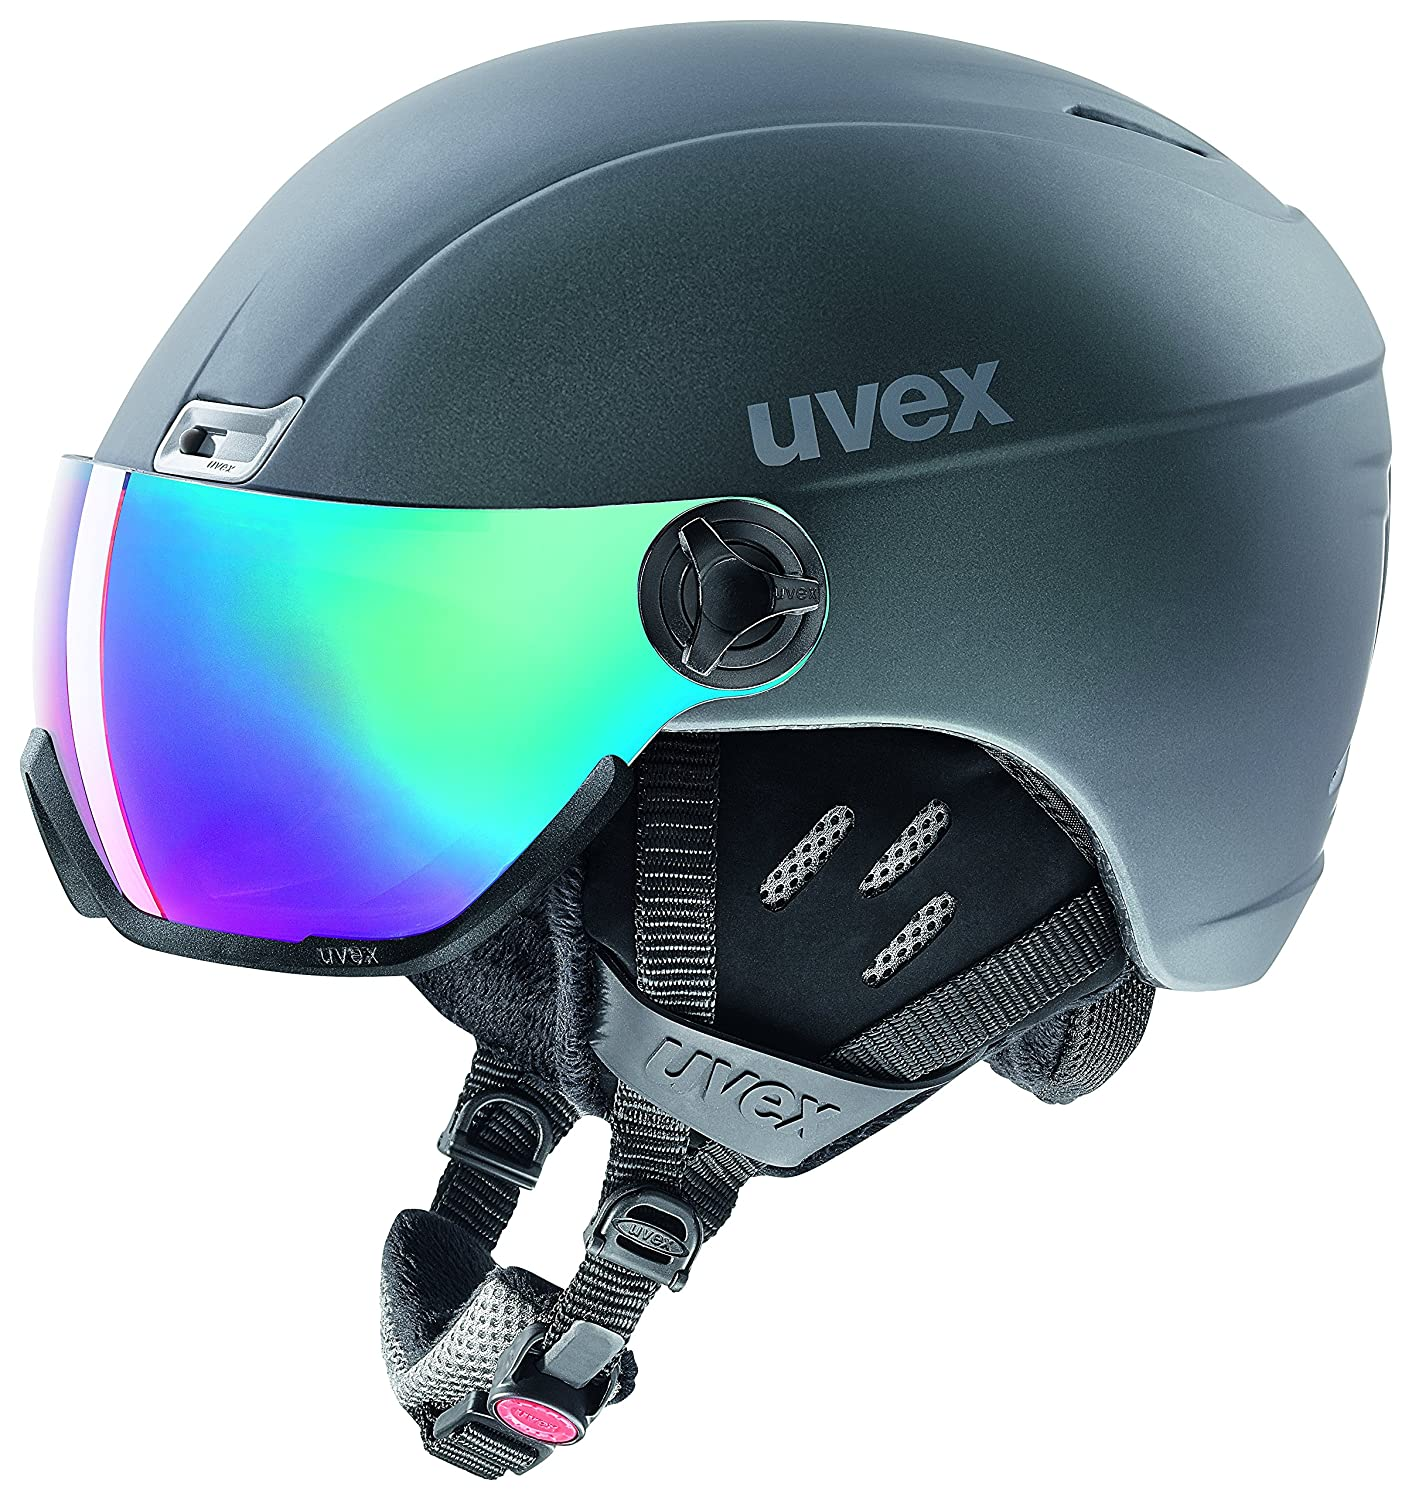 Top 15 Best Ski Helmet for Kids Reviews in 2020 15